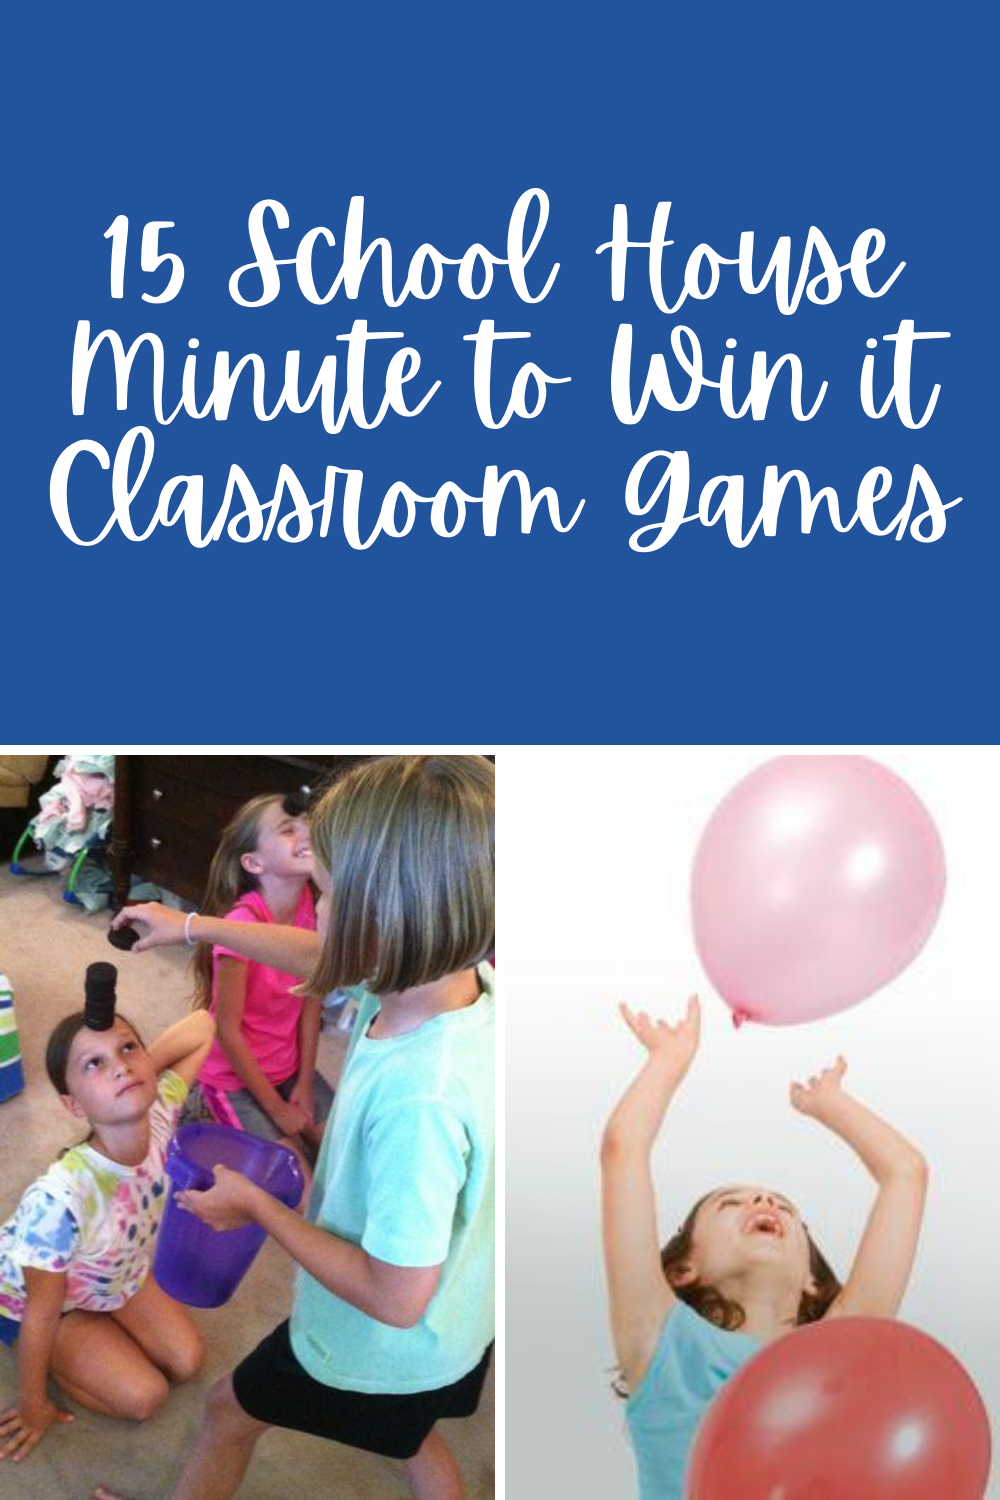 Educational Minute to Win It Classroom Games